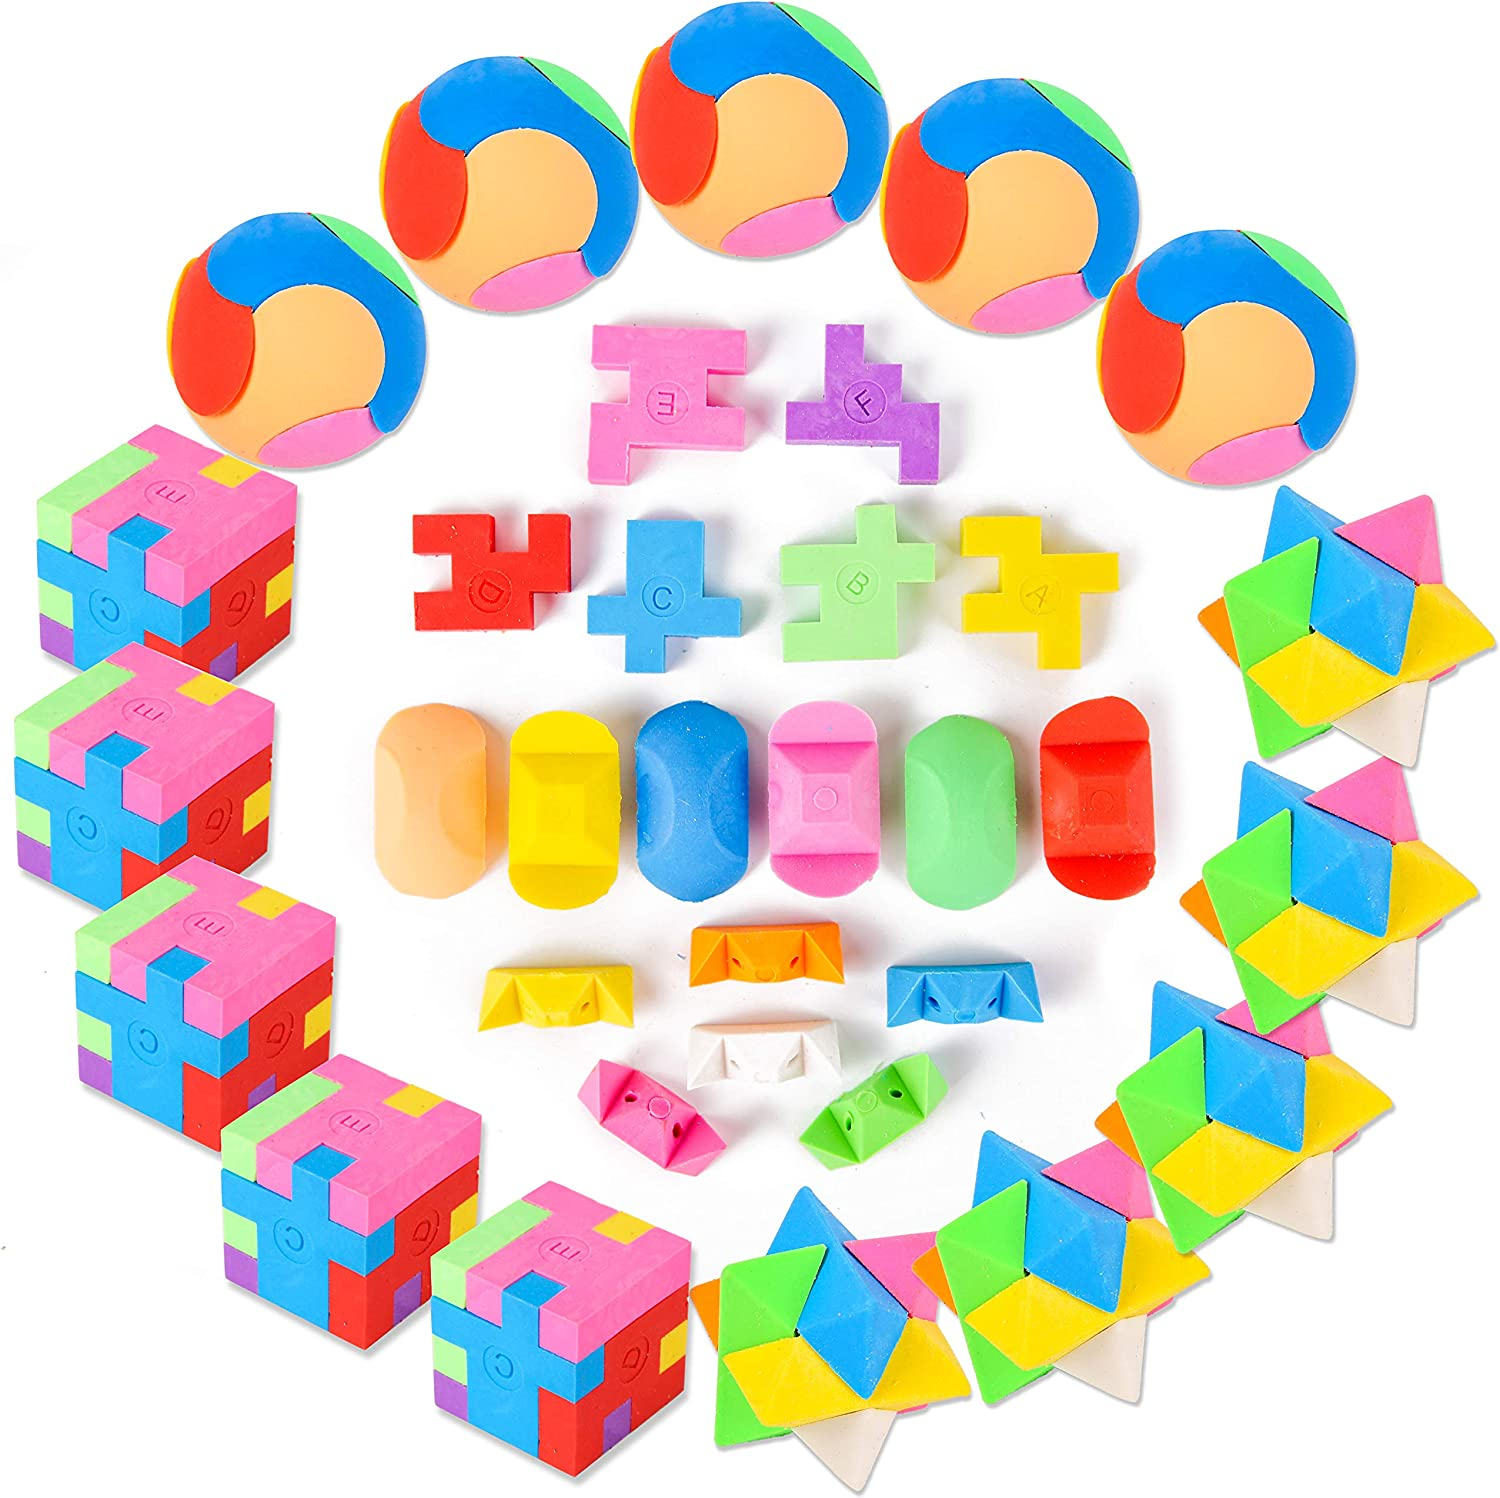 PROLOSO 15 Pcs Puzzle Cube Pencil Erasers Kids Party Favors Classroom Student Prizes Brain Teasers